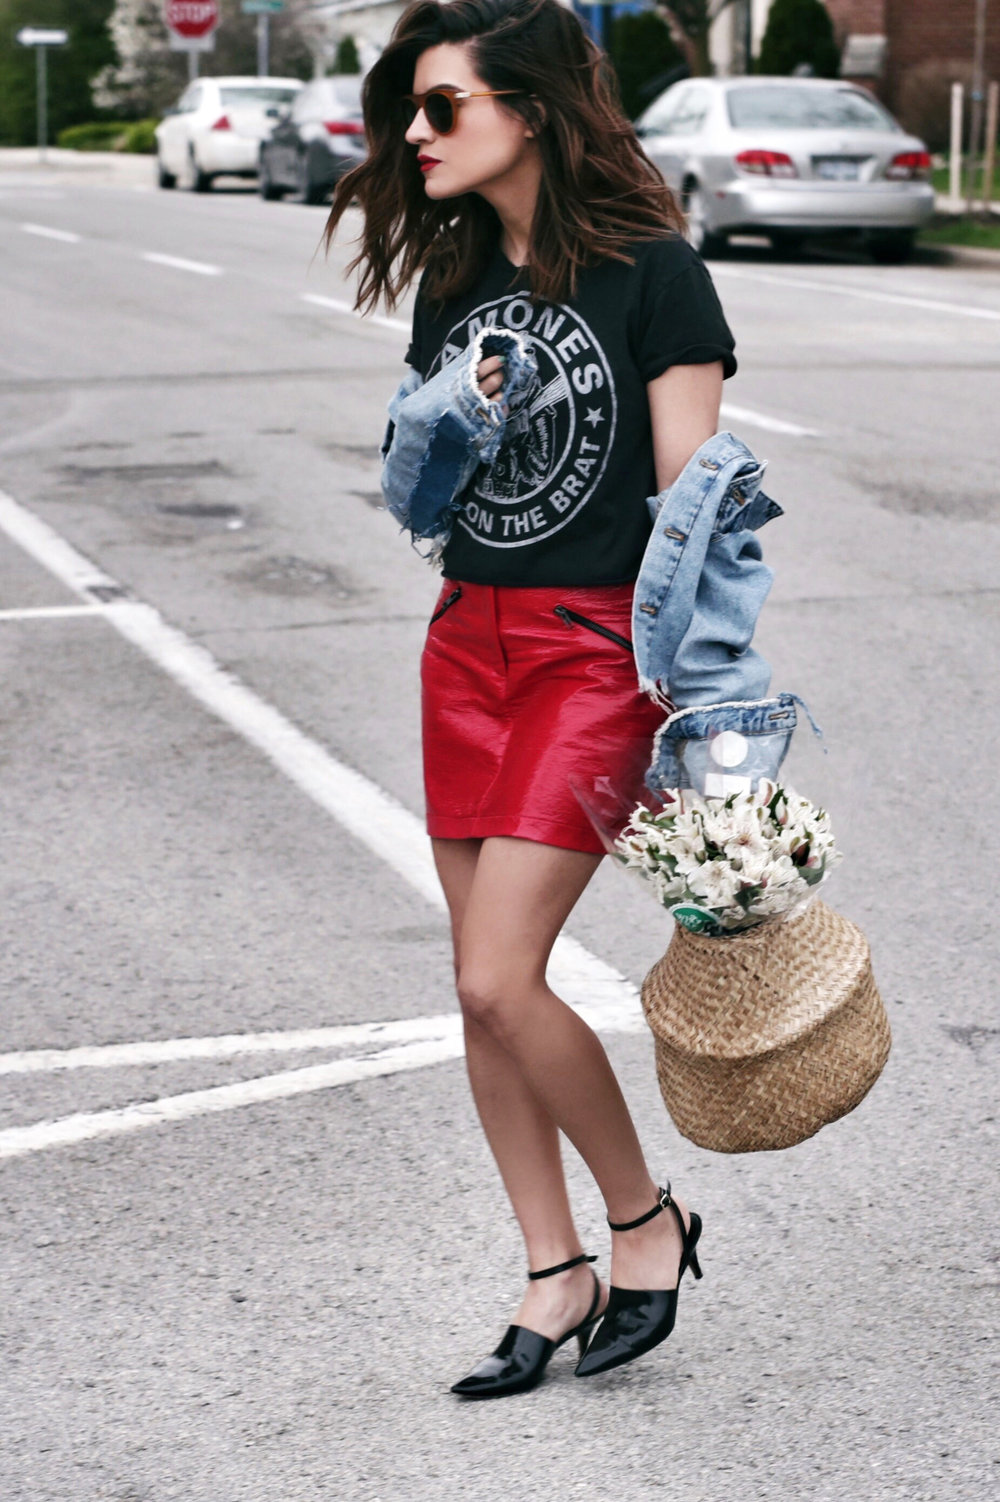 Topshop red vinyl skirt and Alexander Wang kitten heels paired with a graphic concert tee from Zara_8373.JPG